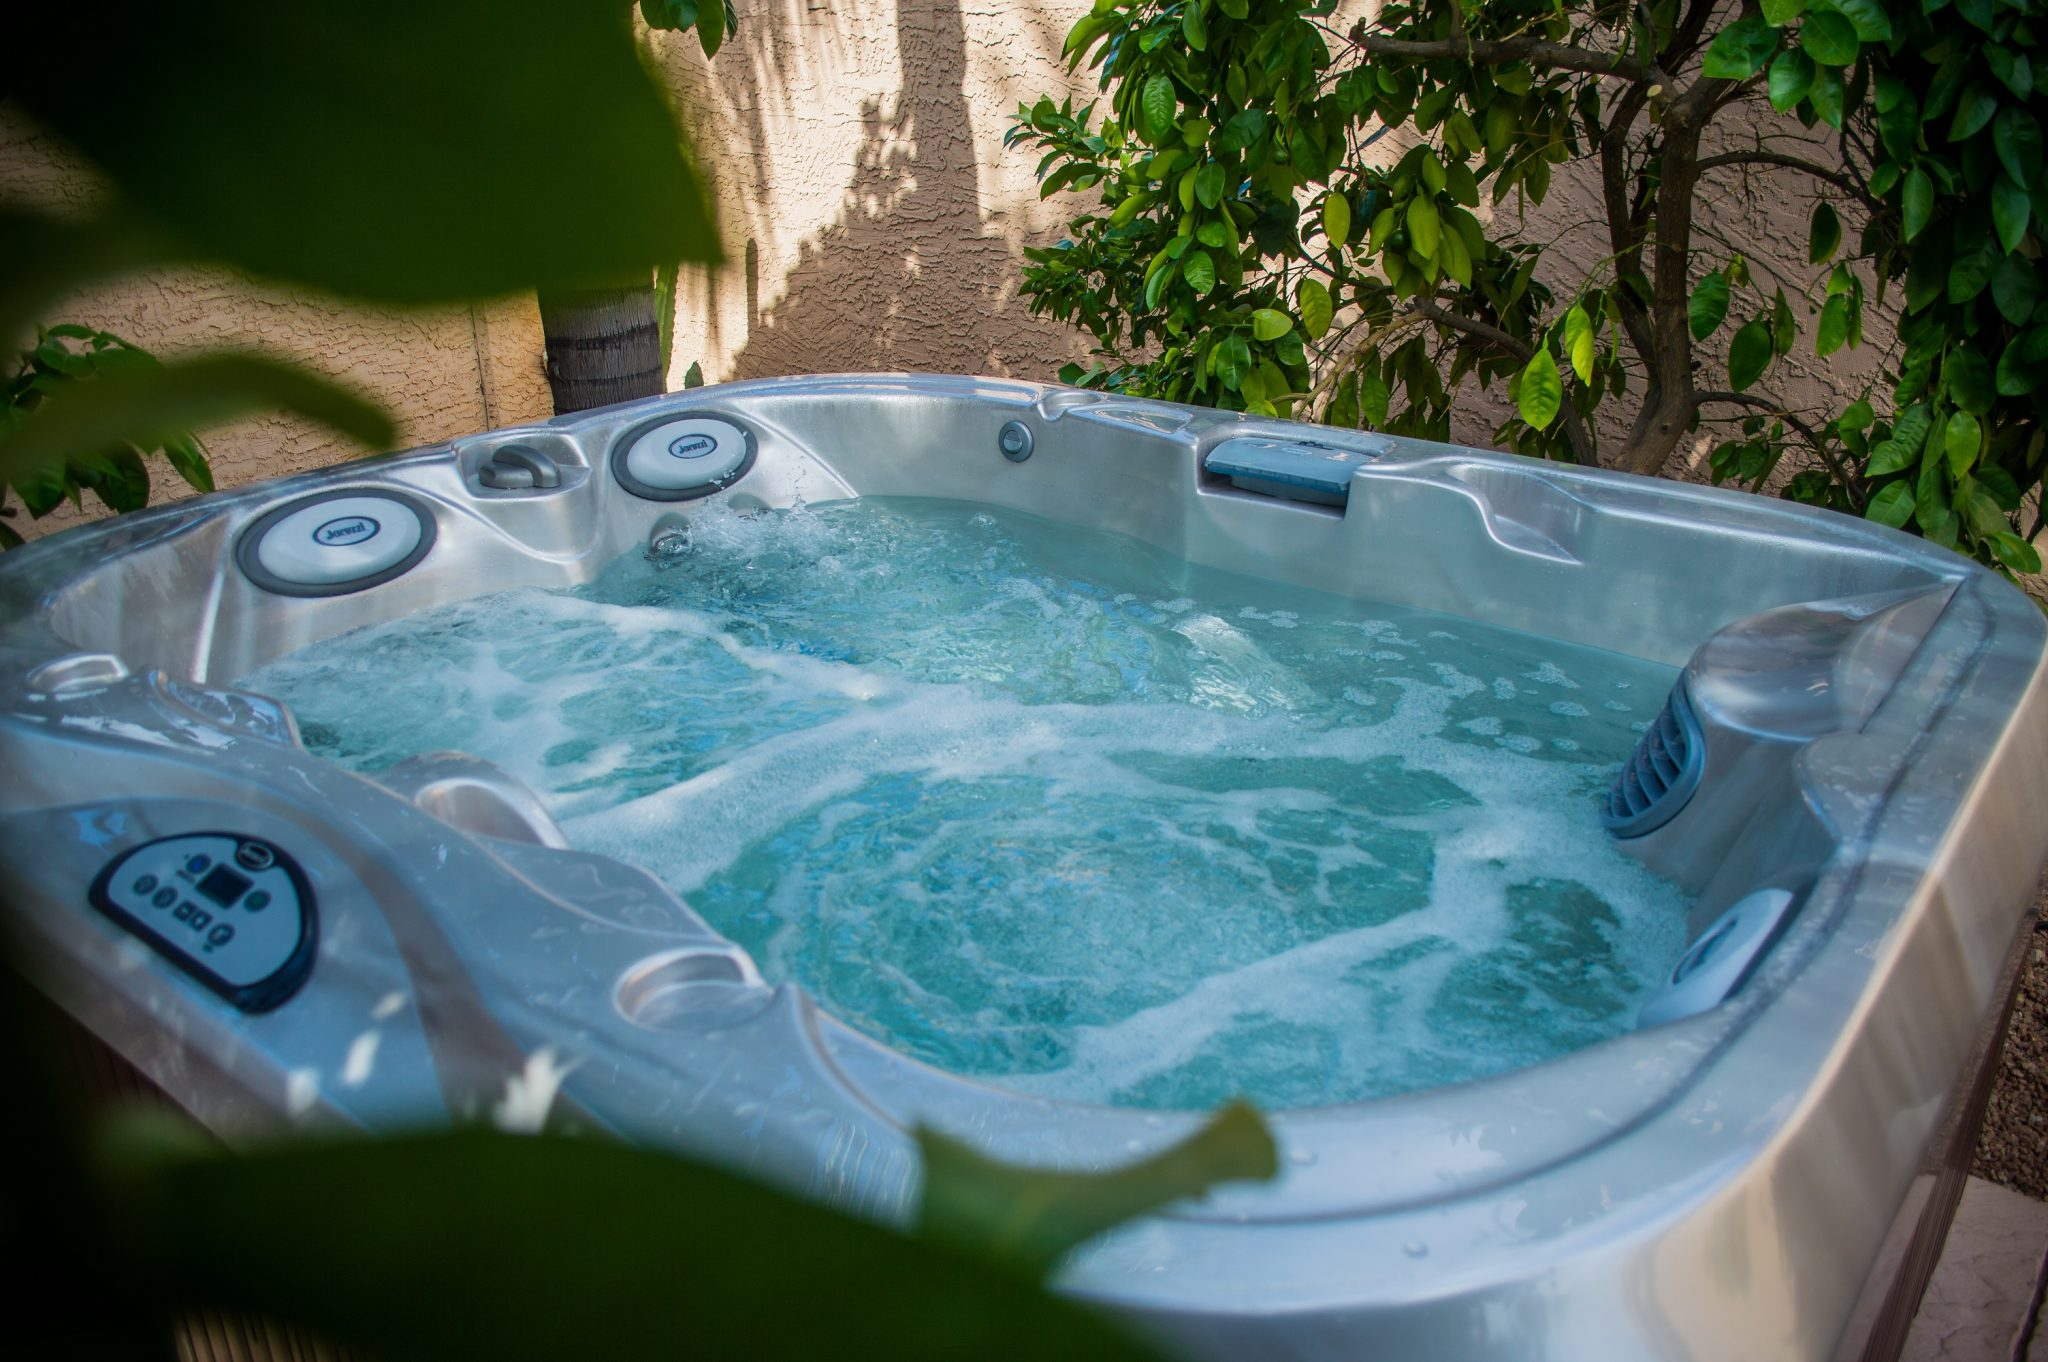 Outdoor Jacuzzi Hot Tub in Manitoba